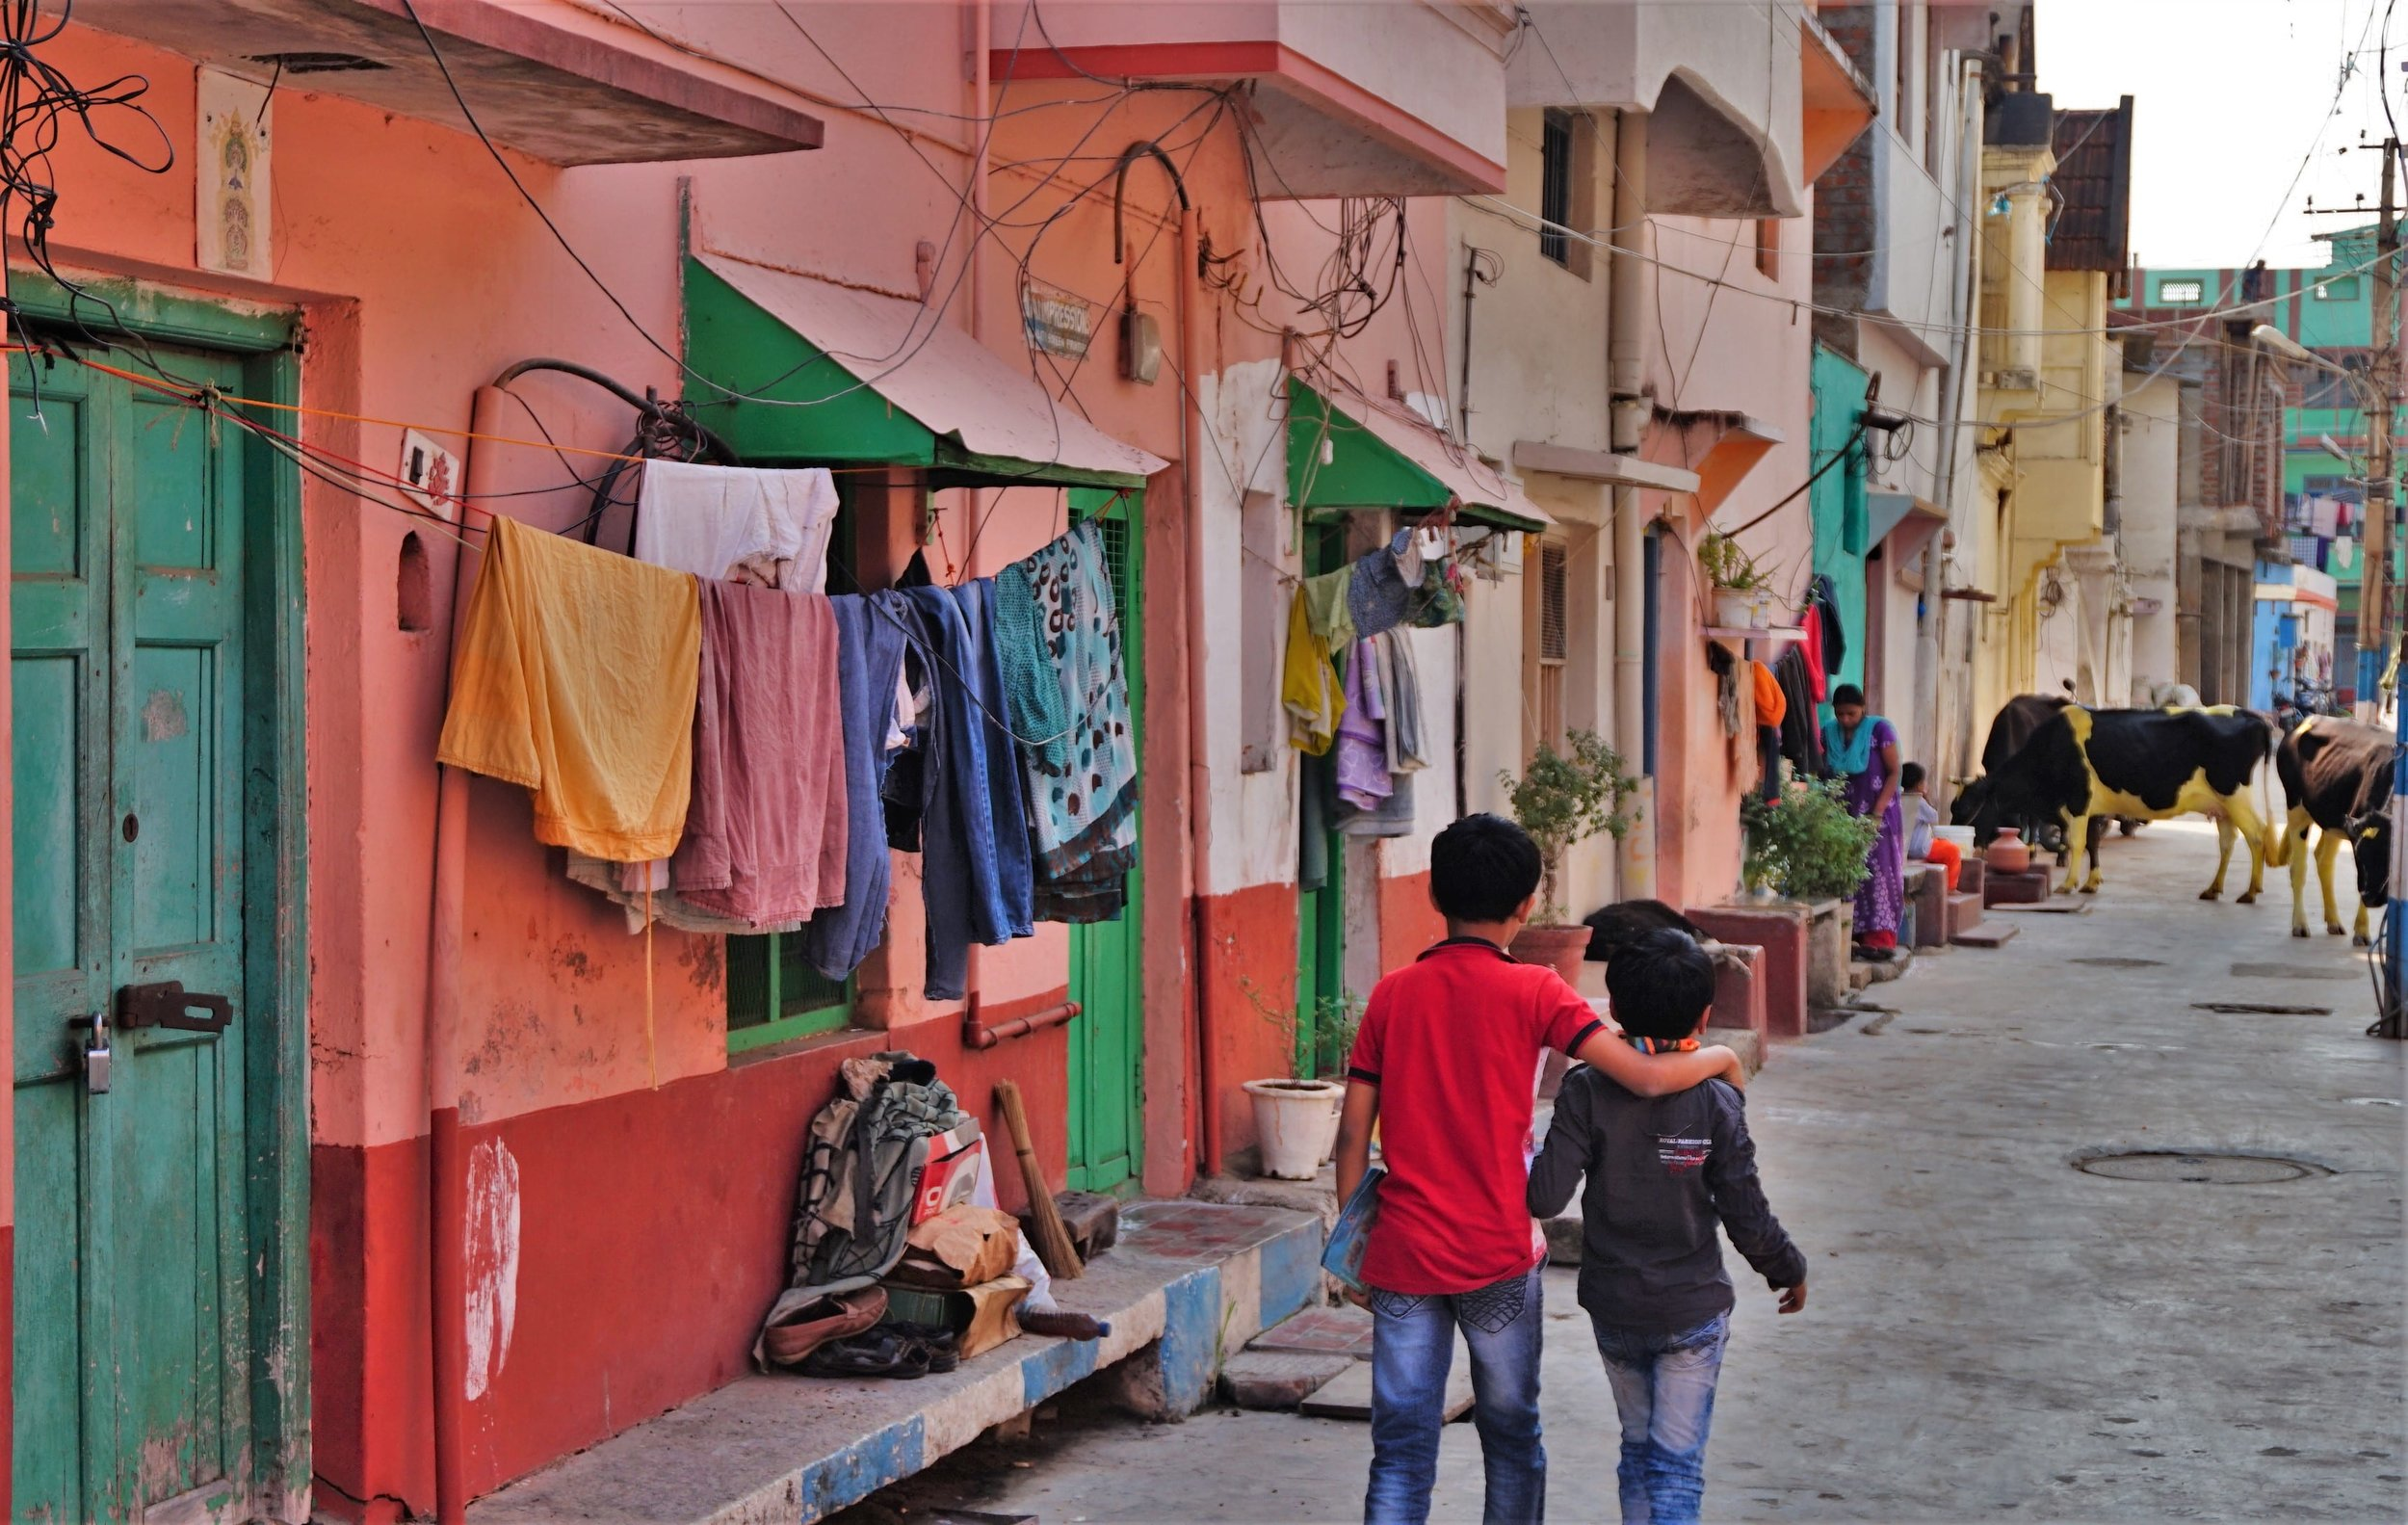 Wander the beautiful colourful streets of Mysore.